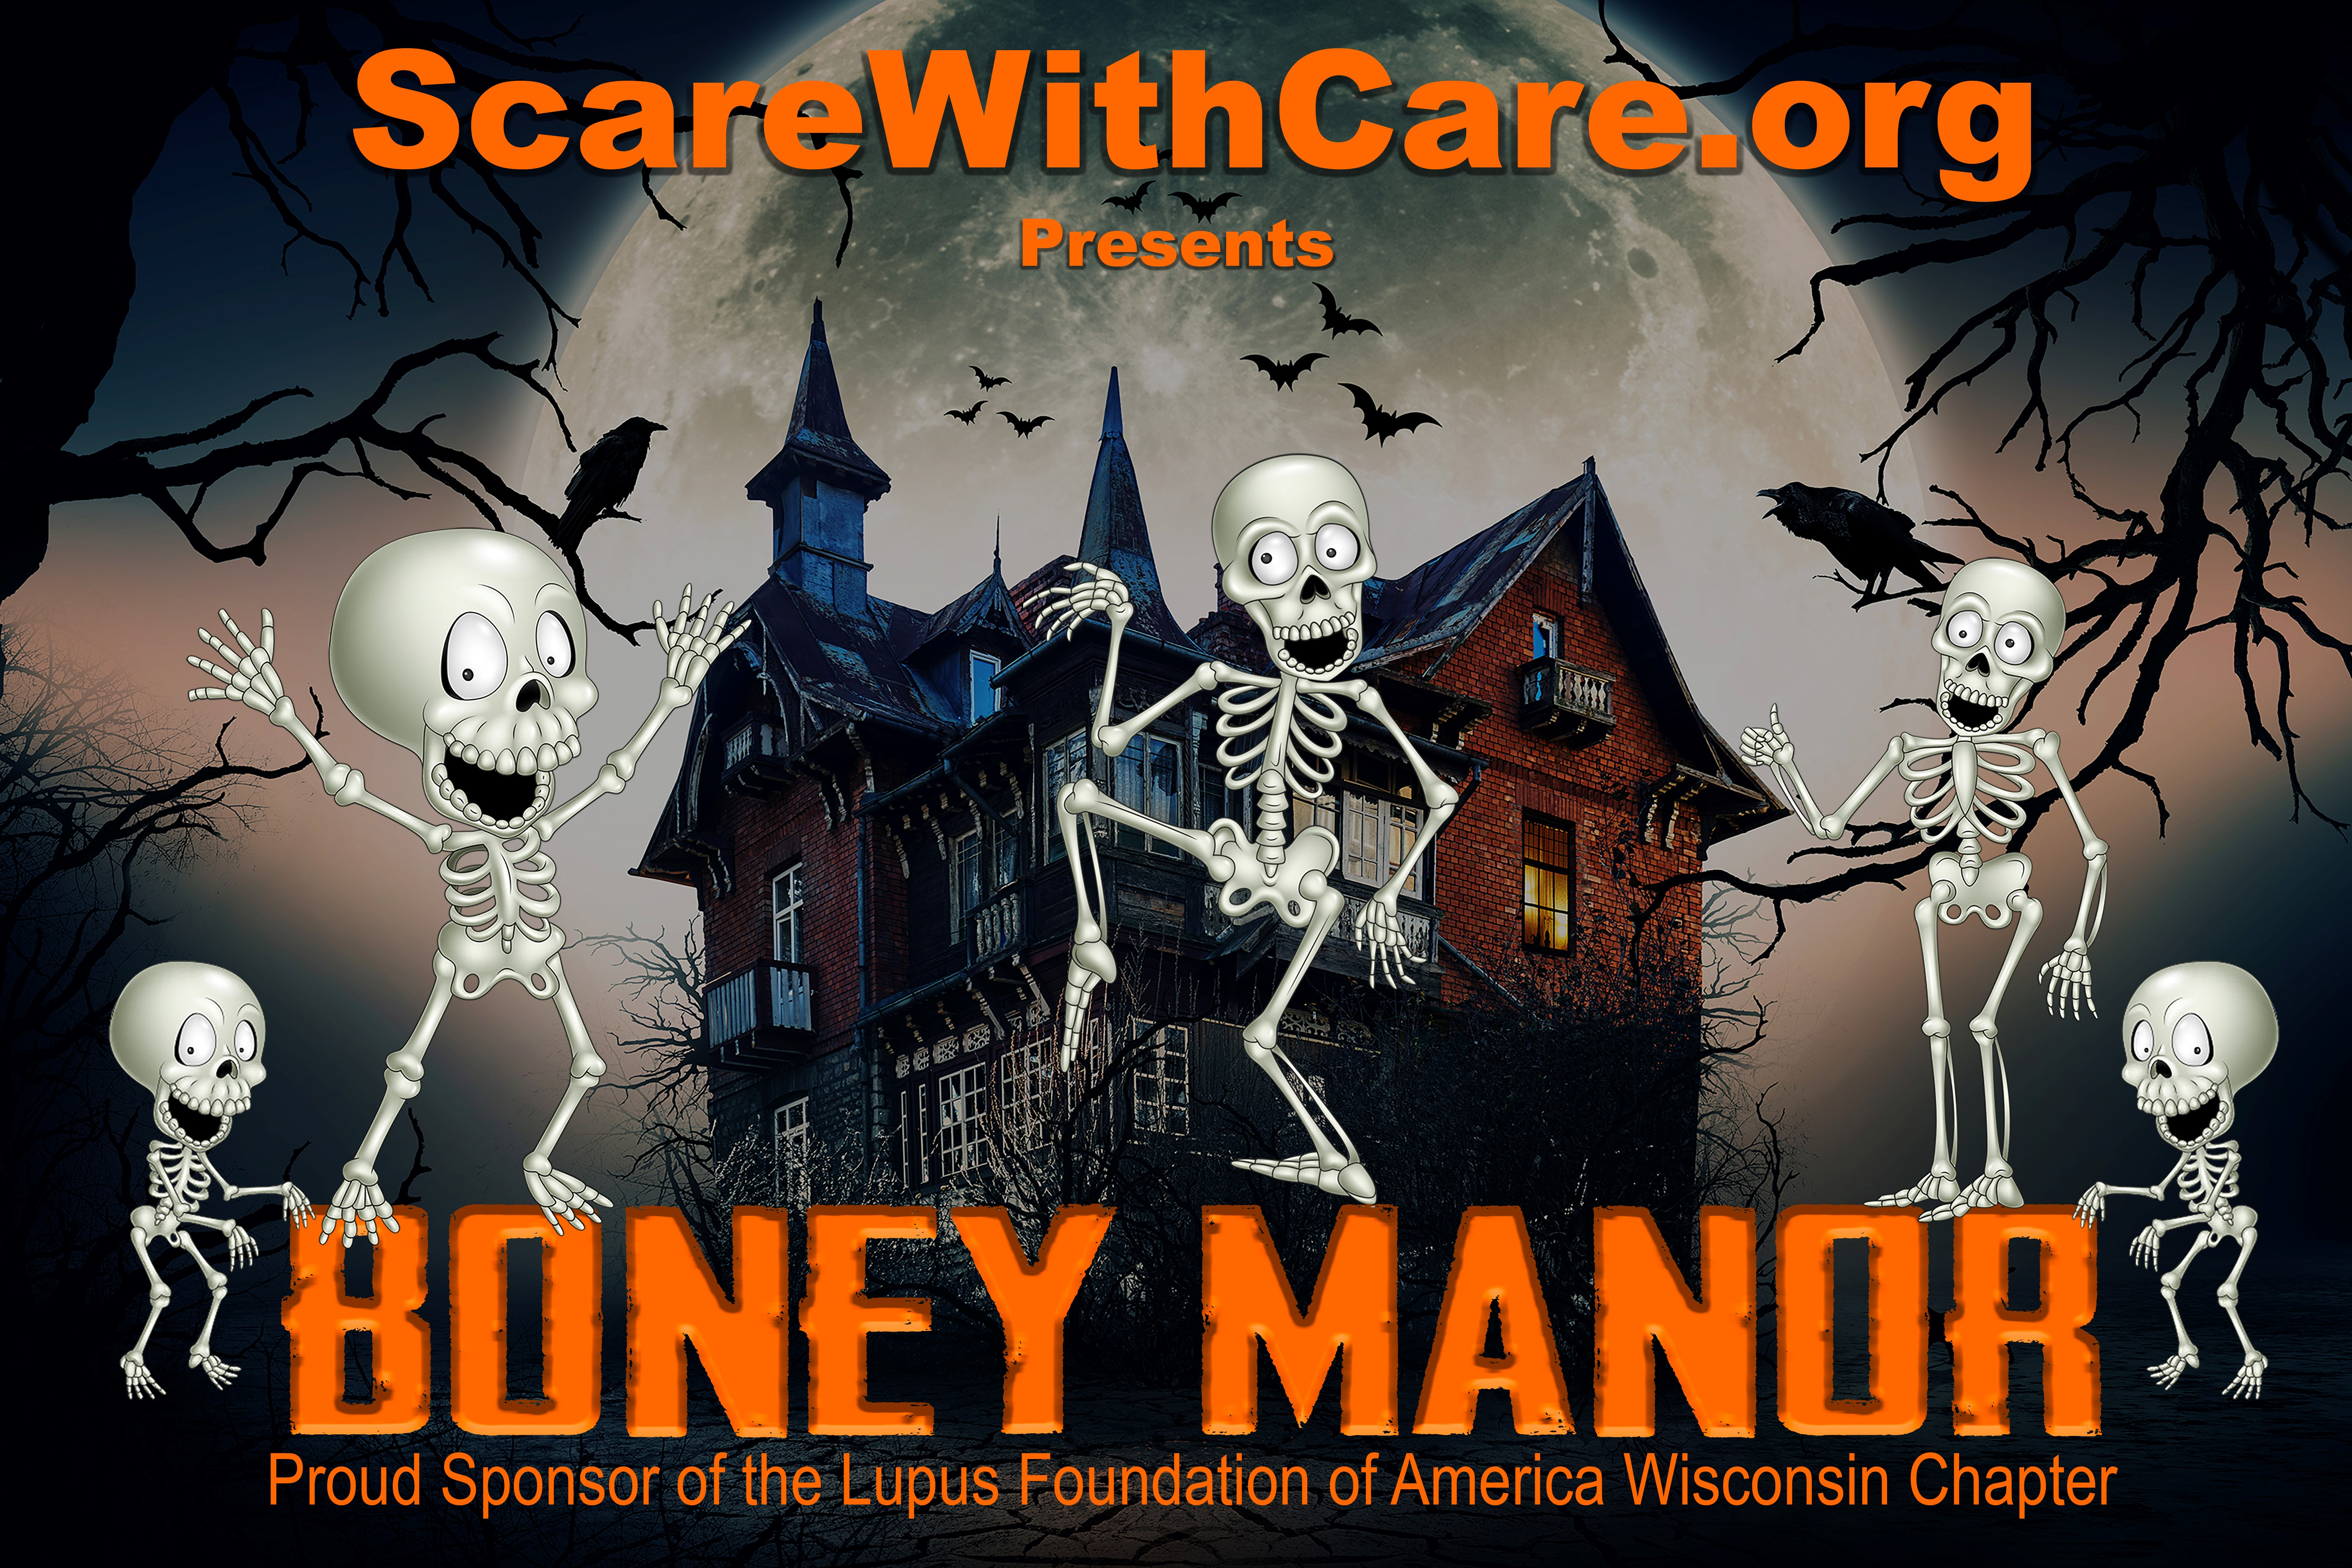 ScareWithCare.org